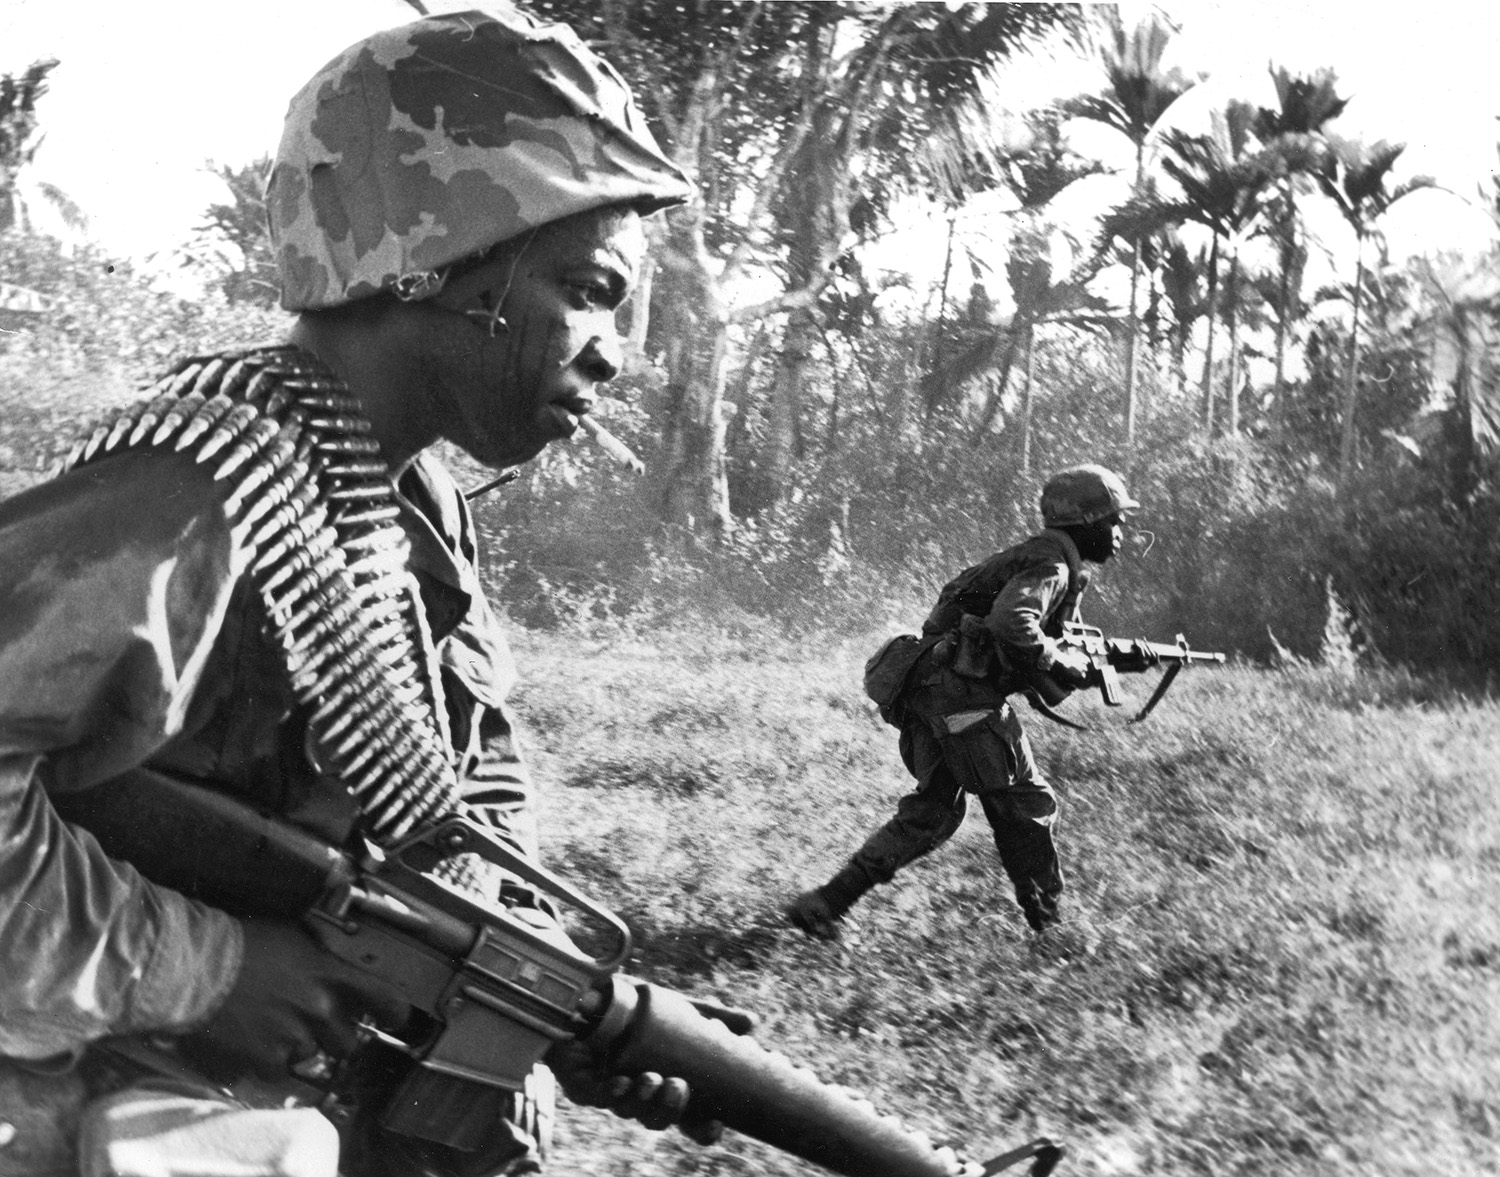 19670321_173_ab_troopers_charge_war_zone_d.jpg